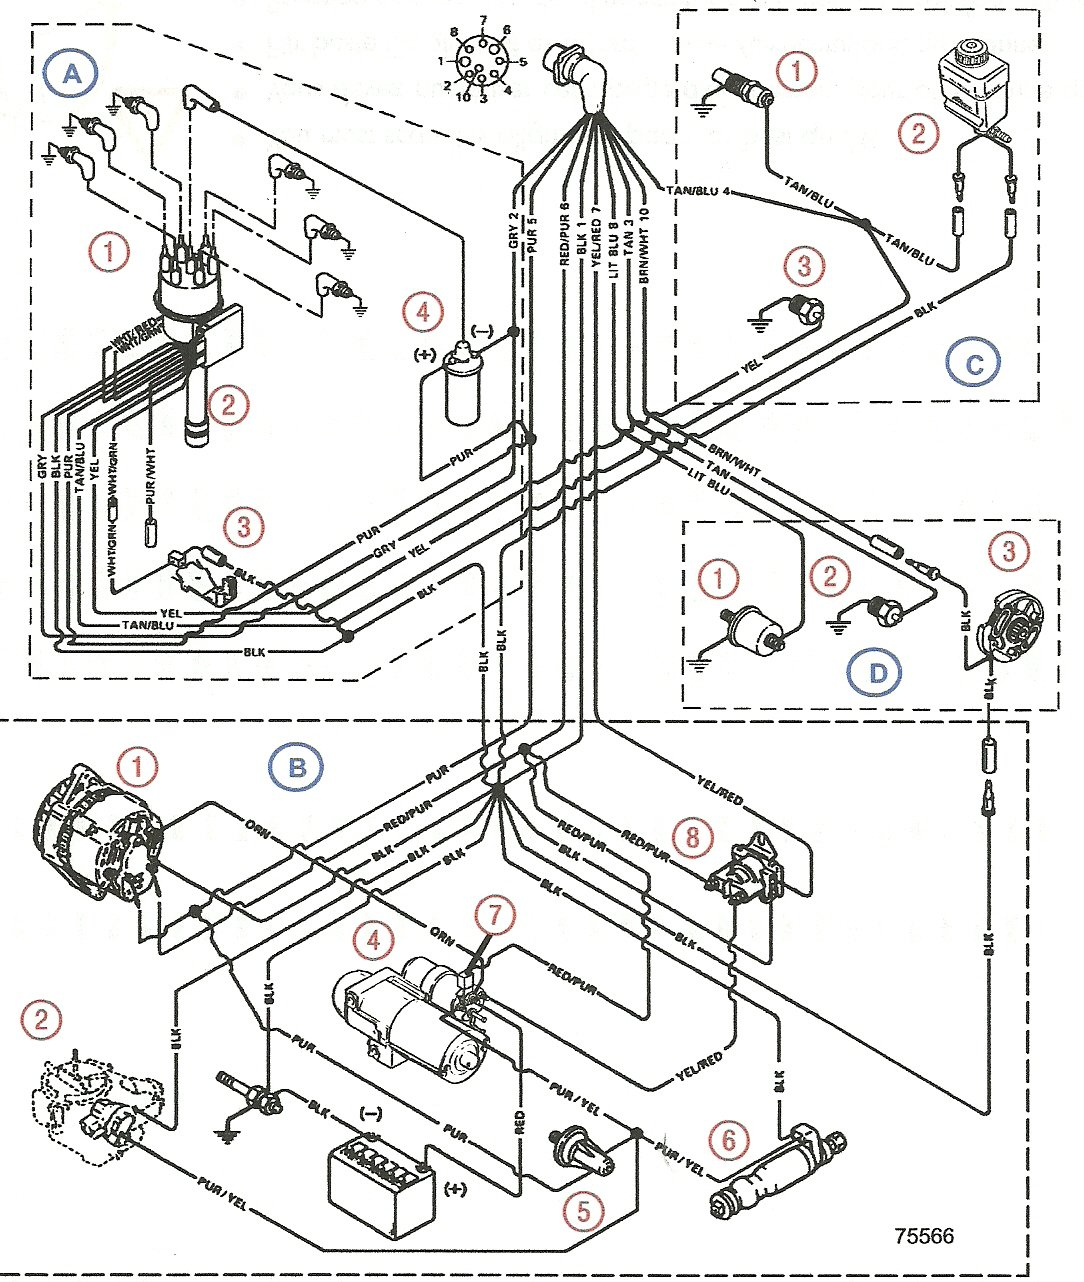 43 Mercruiser Wiring Diagram | #1 Wiring Diagram Source